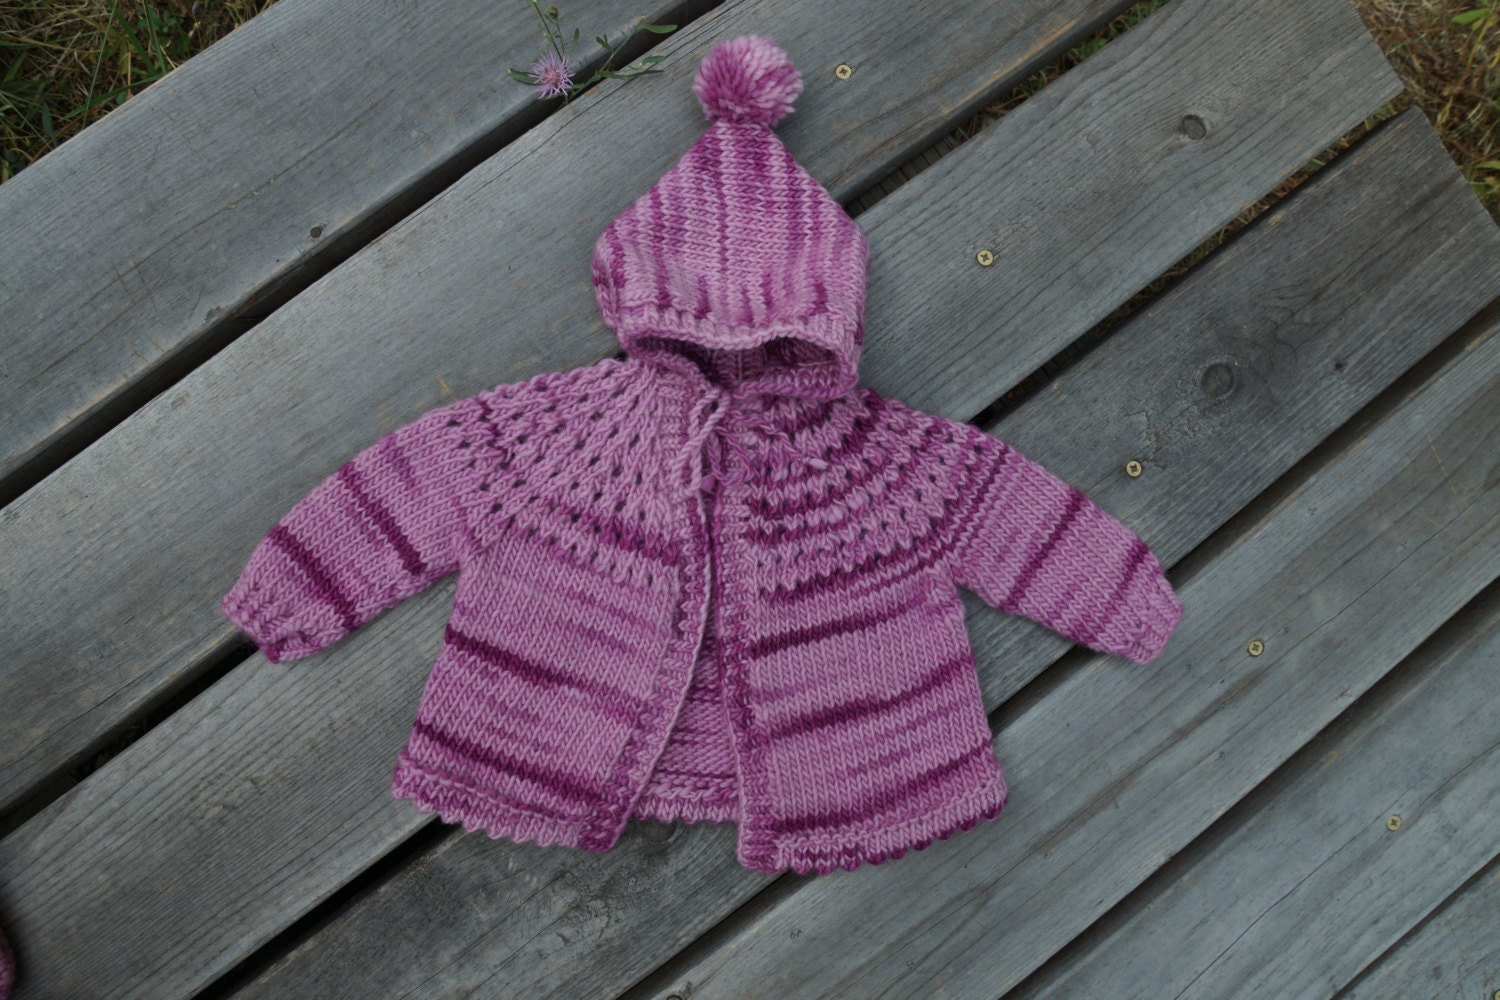 Knitting Pattern Cardigan For 18 Months : Baby Hooded Cardigan PDF Knitting Pattern size 6-18 months.